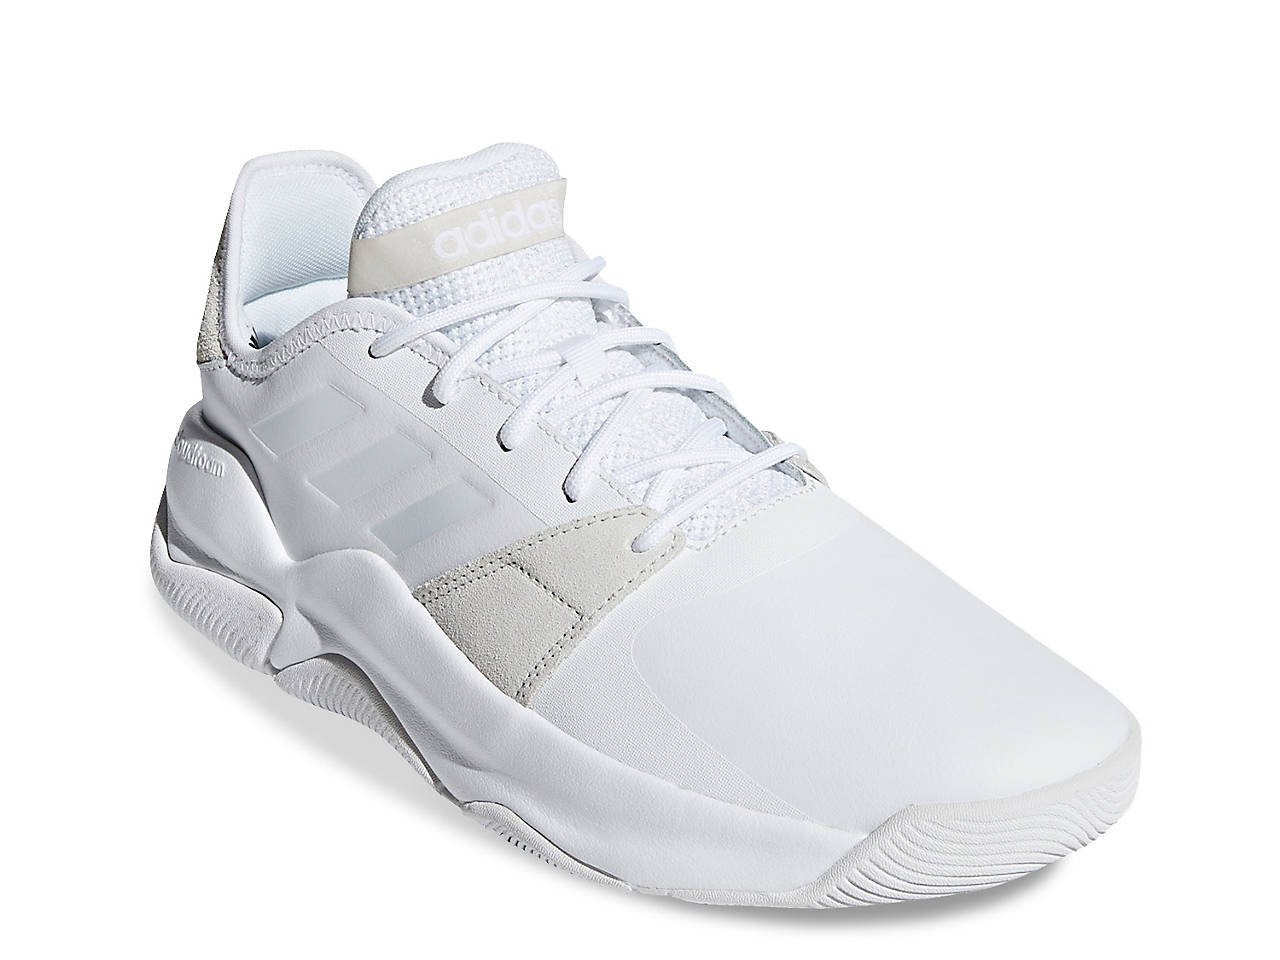 547dbd54b4e Streetflow Basketball Shoe - Men's